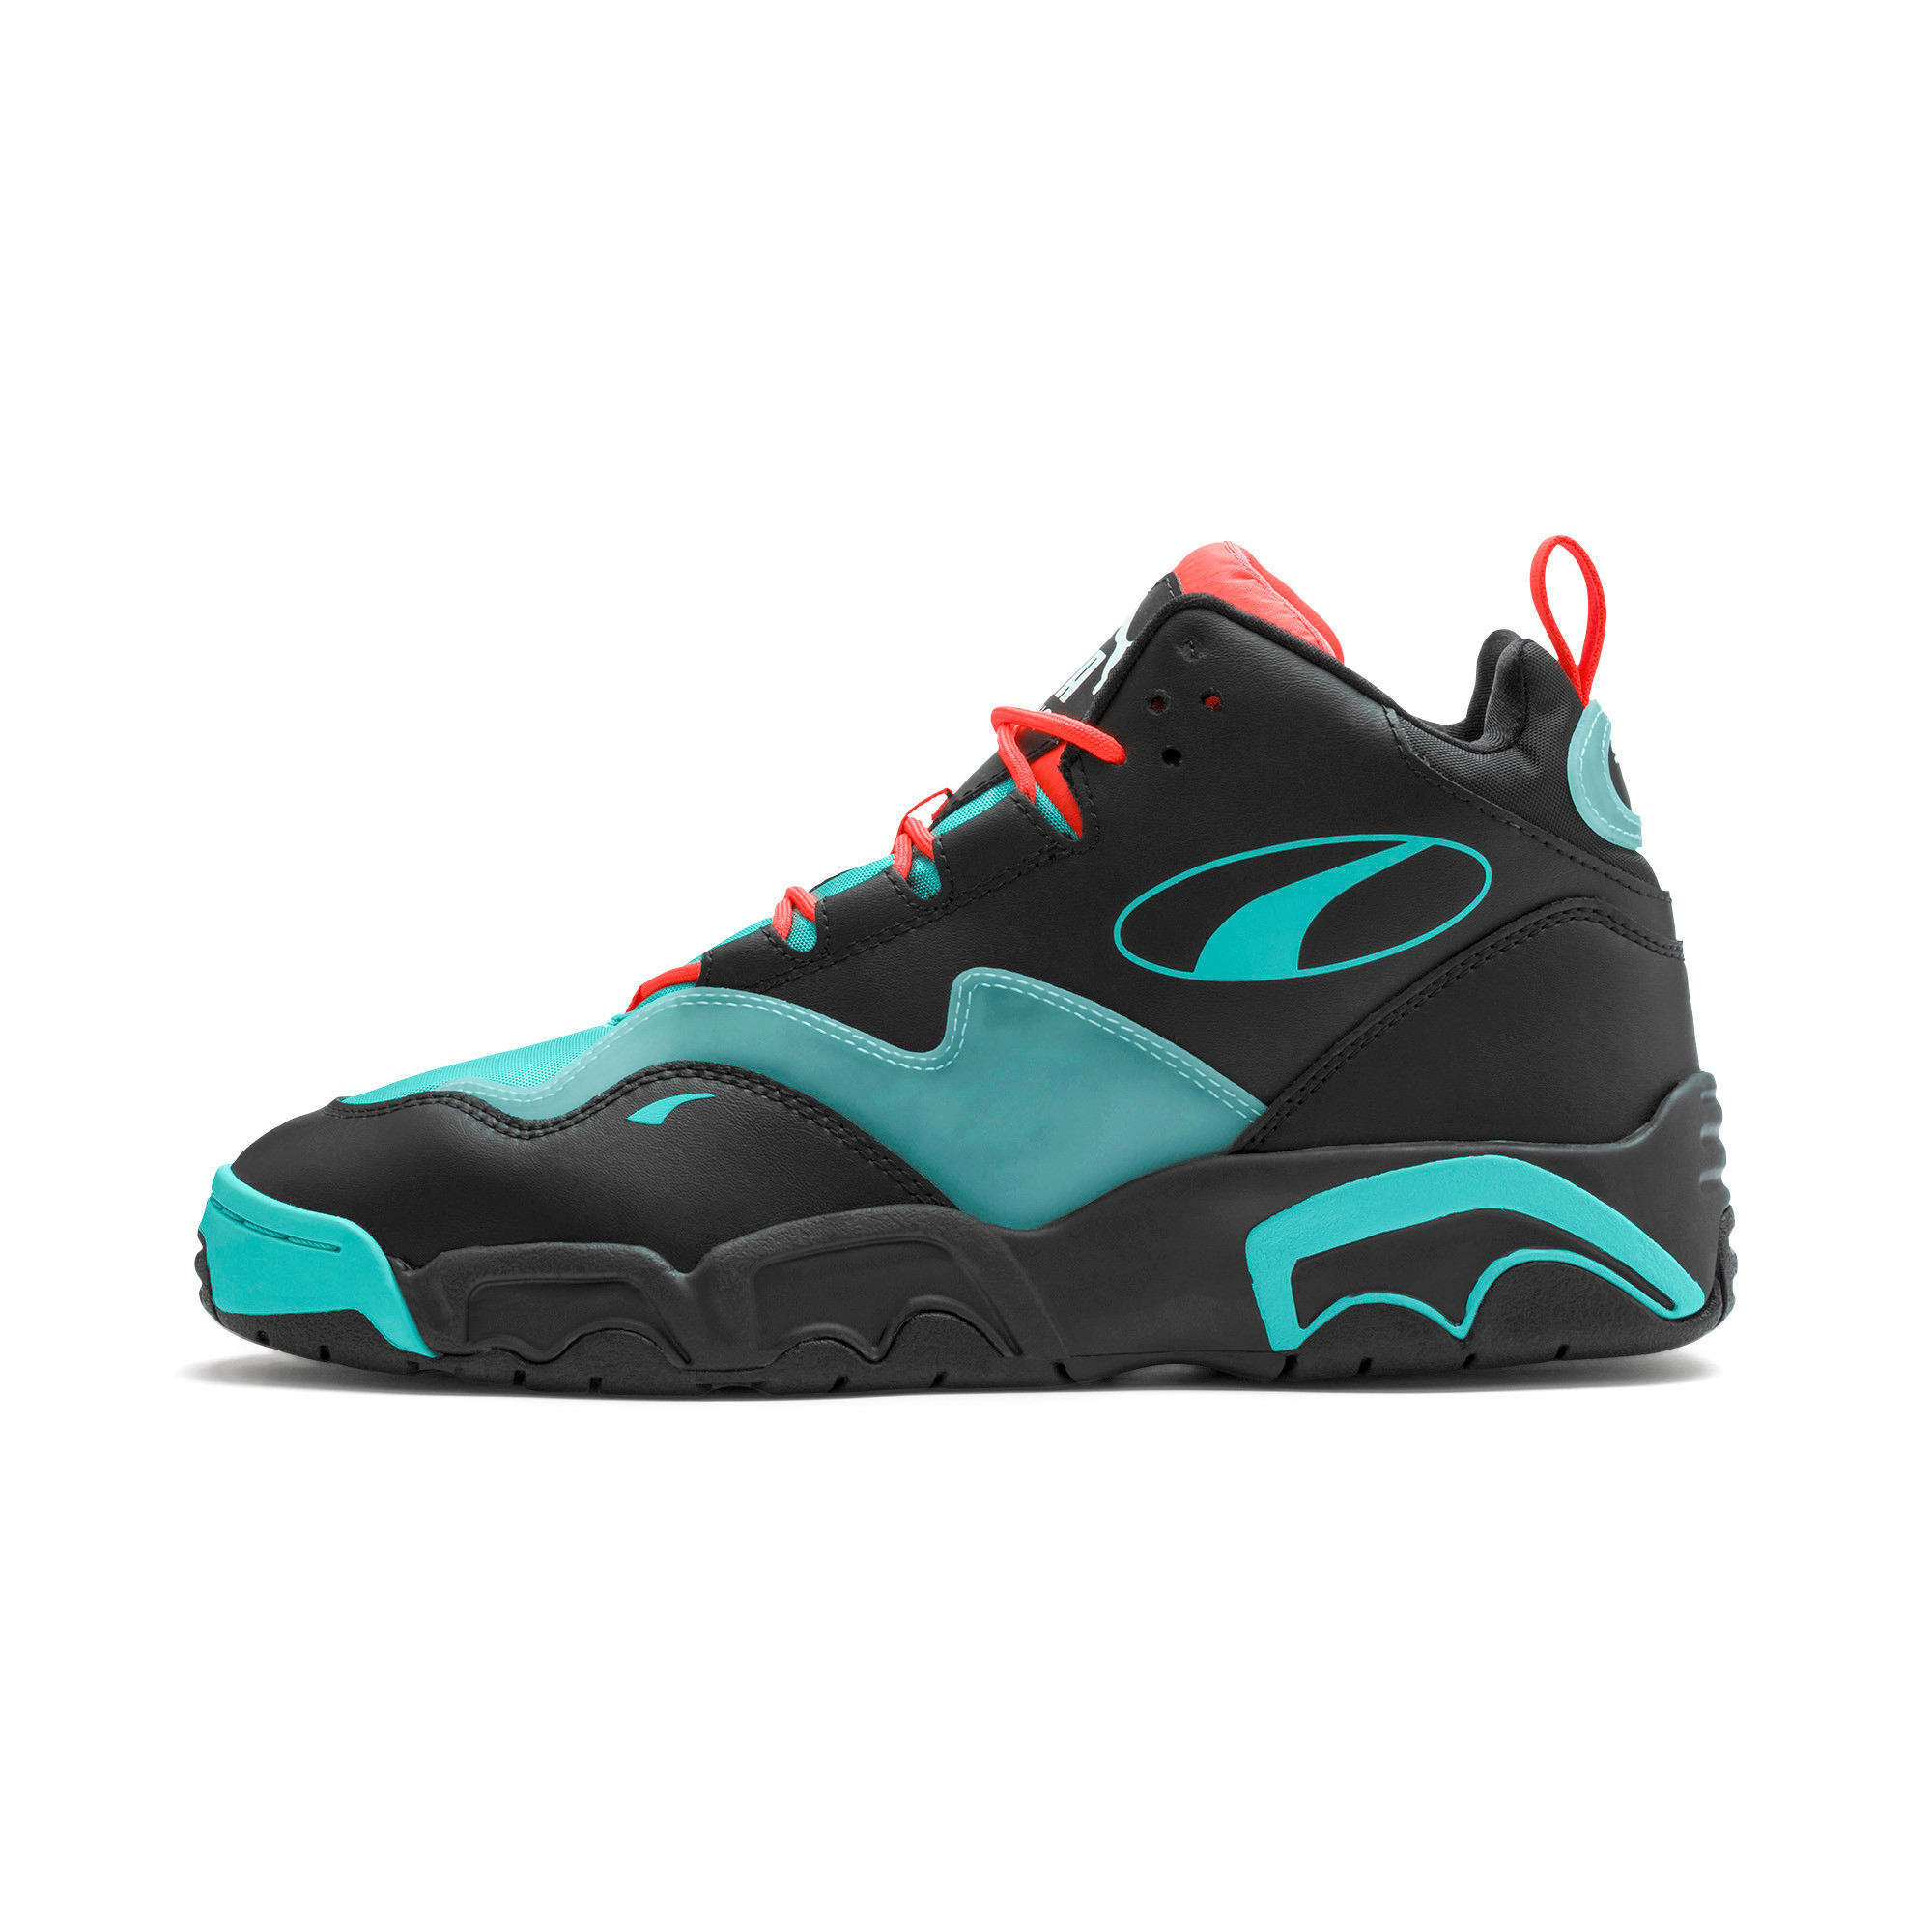 Thumbnail 1 of Source Mid Buzzer Trainers, P Blk-Nrgy Red-BlueTurquoise, medium-IND